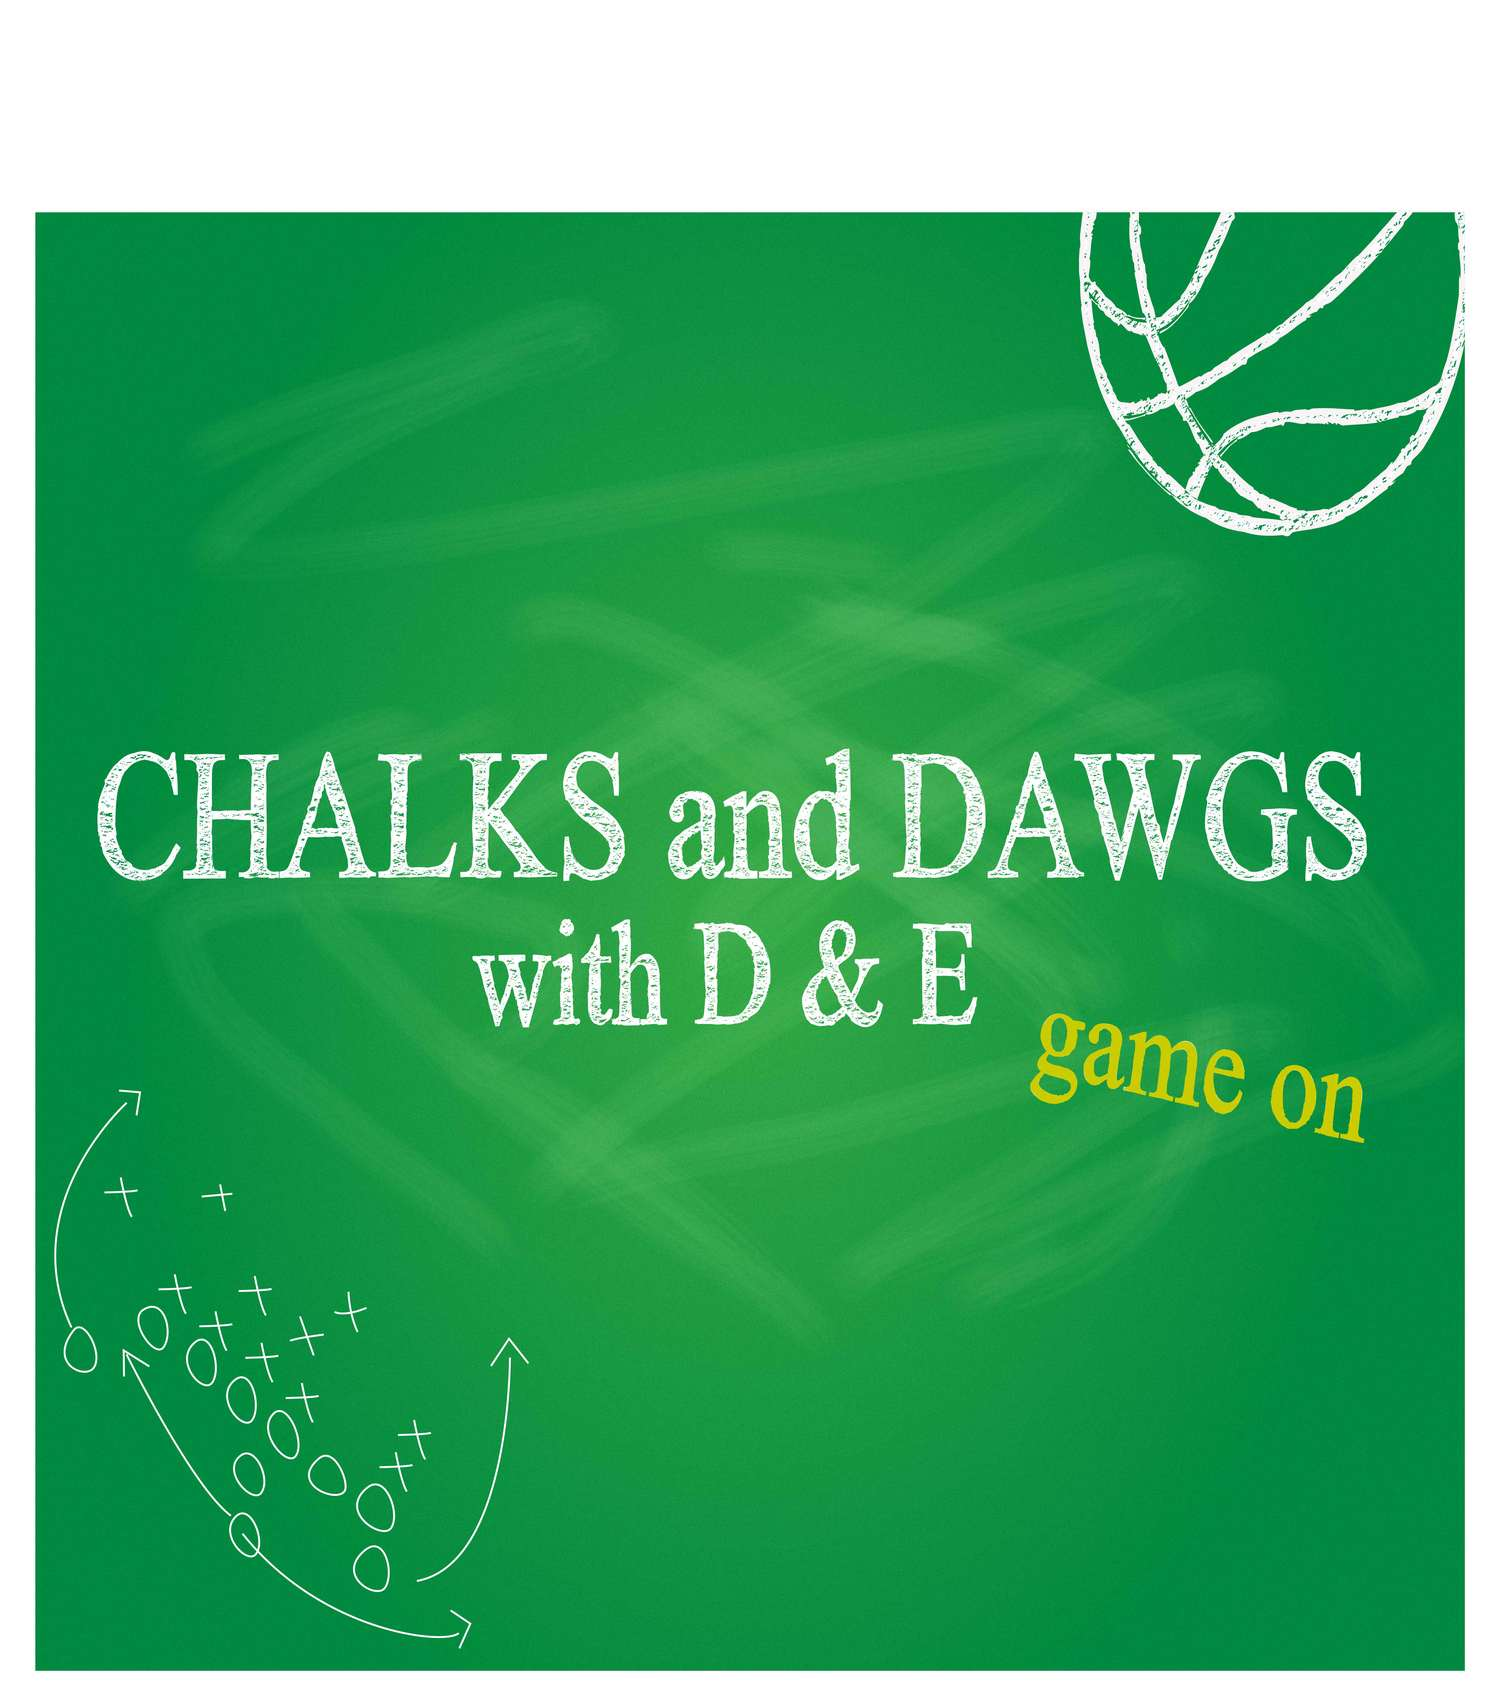 Chalks and Dawgs - Eastham Entertainment